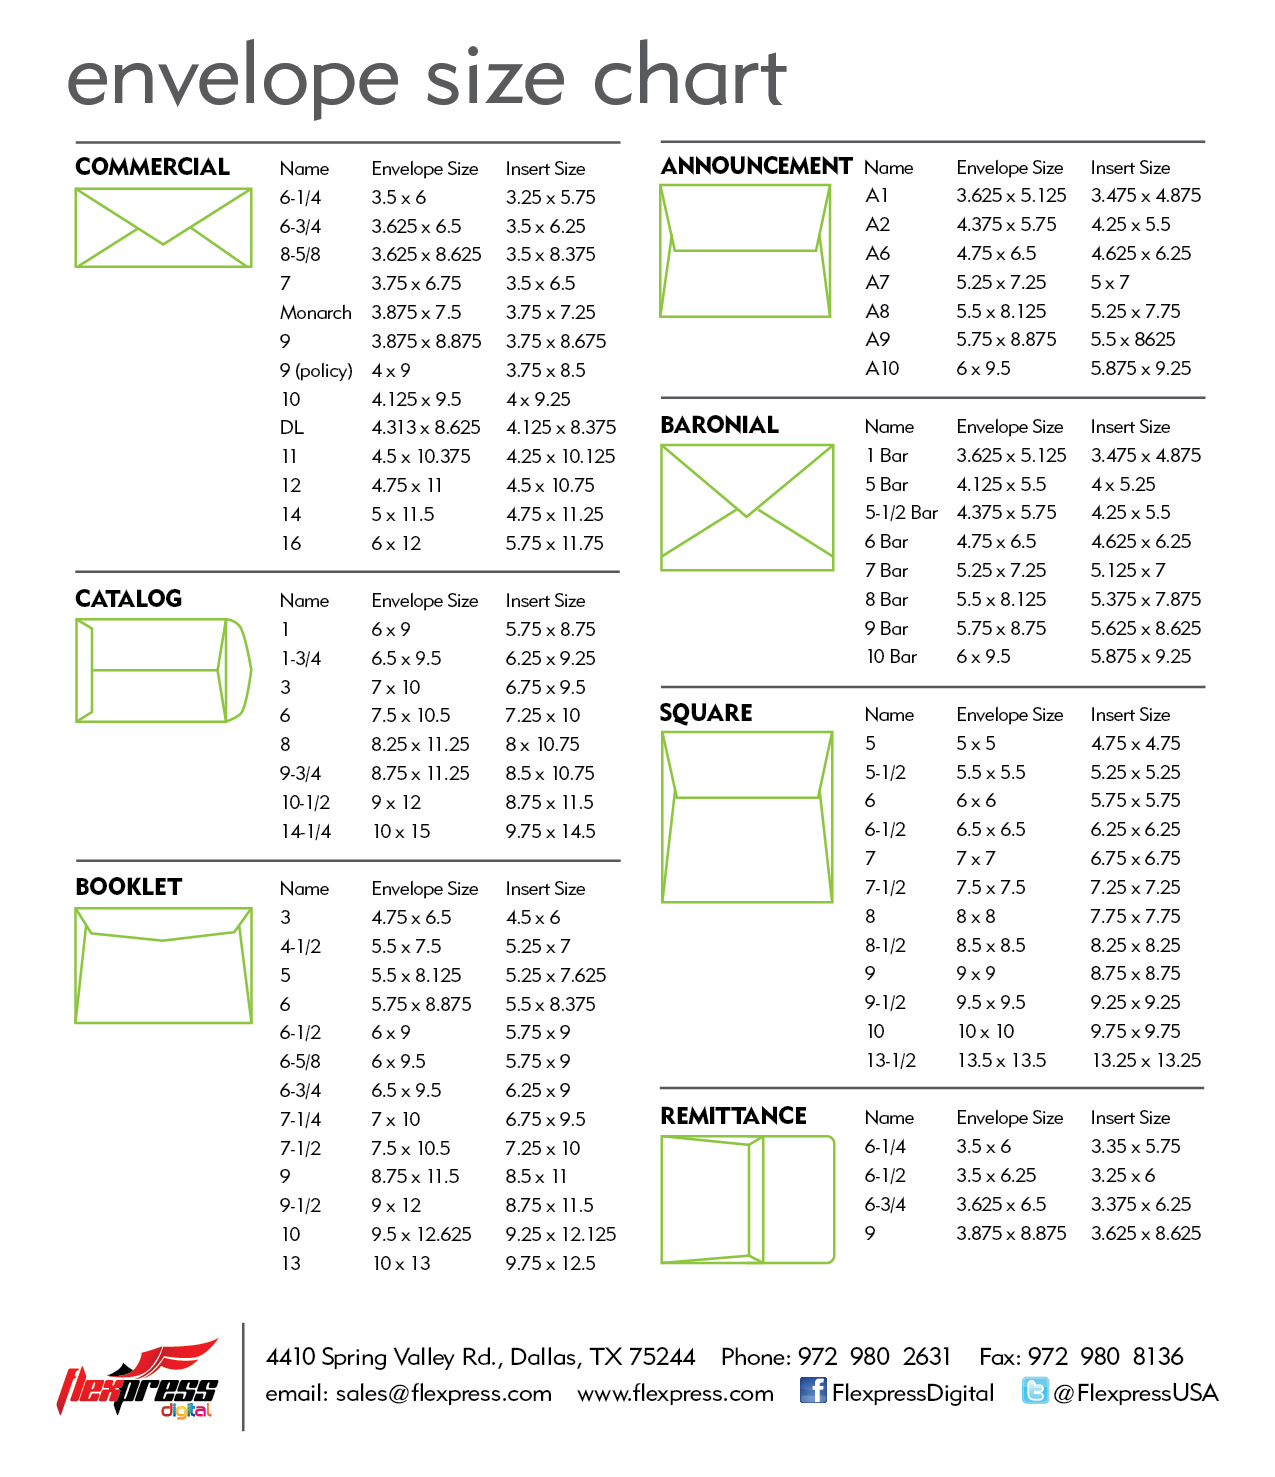 Envelope size chart flexpressdigital